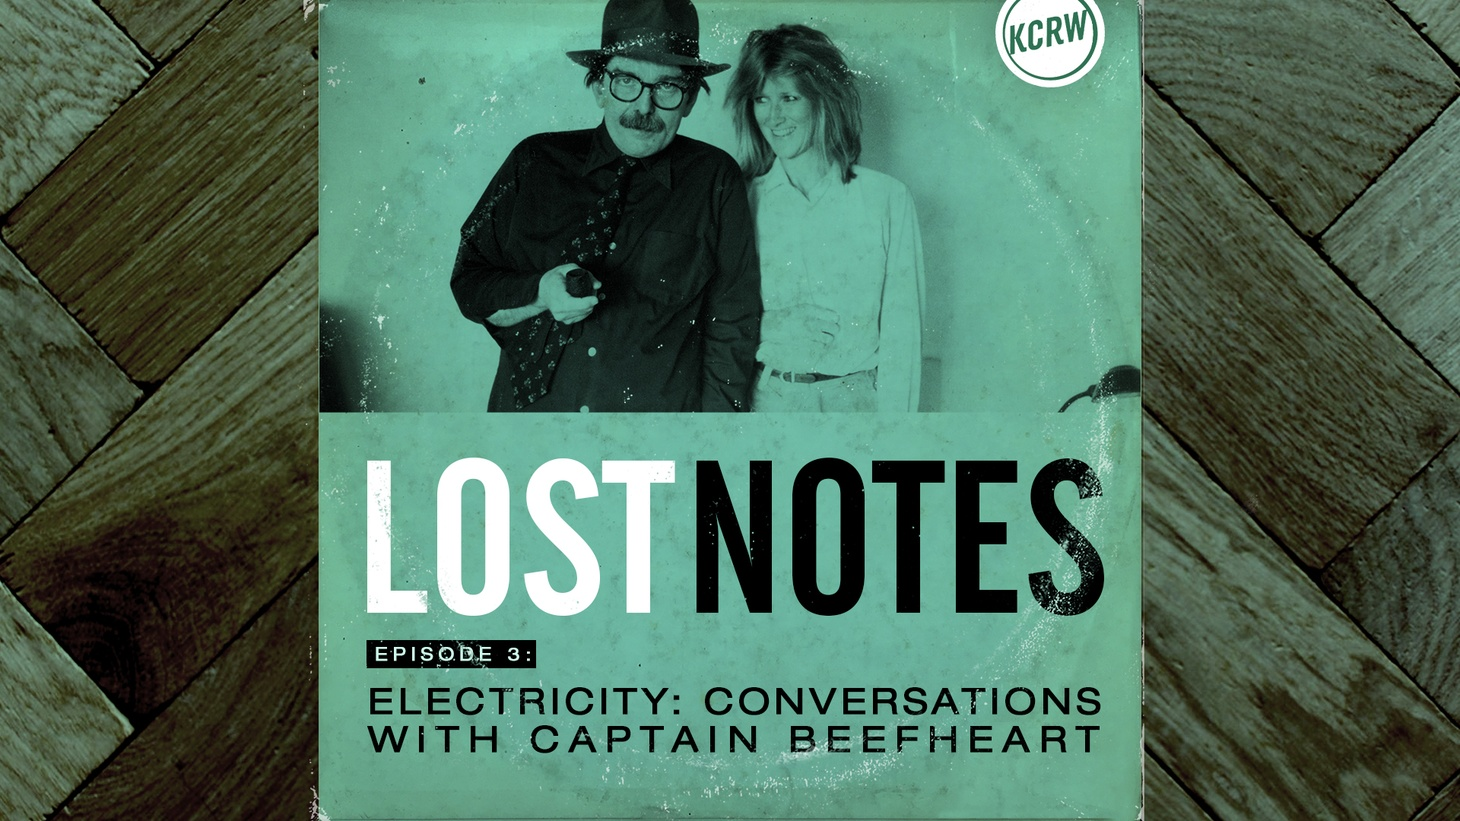 In this intimate radio portrait of one of music's most legendary eccentric geniuses, writer Kristine McKenna offers you a visceral experience of what it was like to be friends with Don Van Vliet (aka Captain Beefheart).